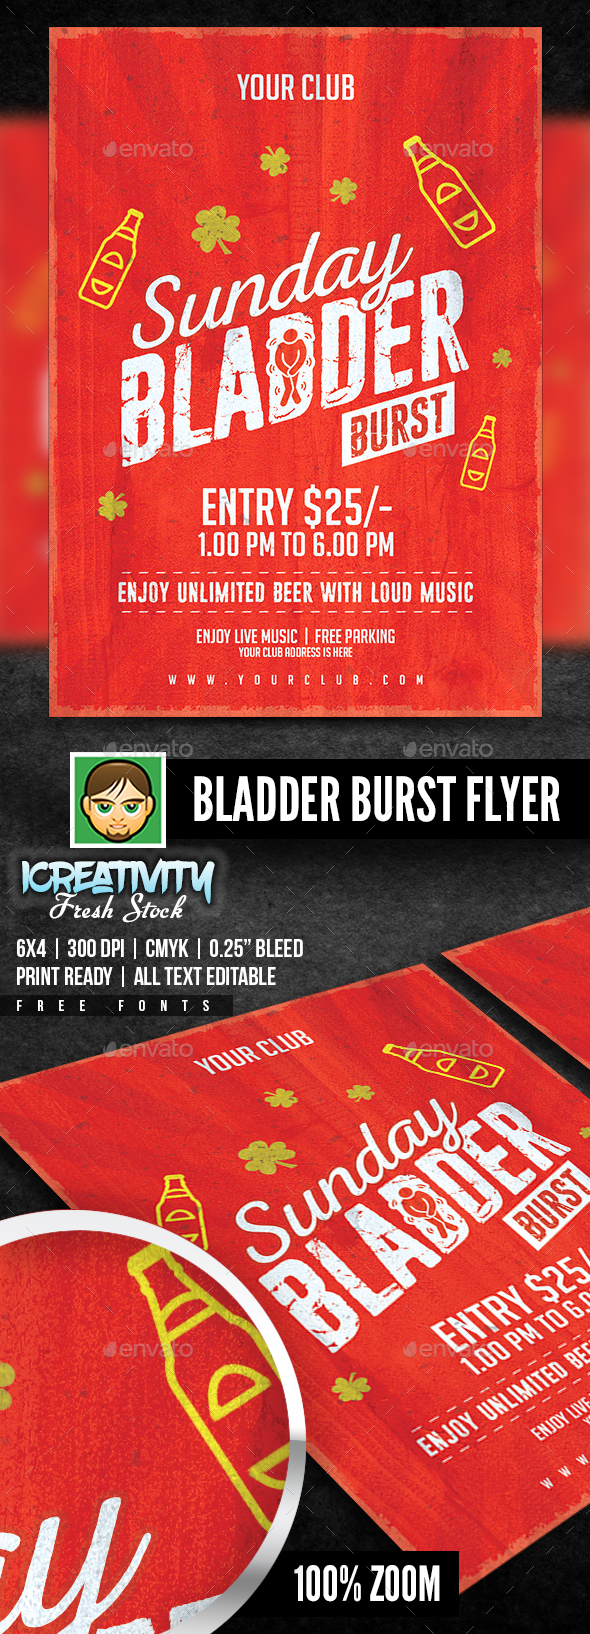 Bladder Burst Flyer - Flyers Print Templates